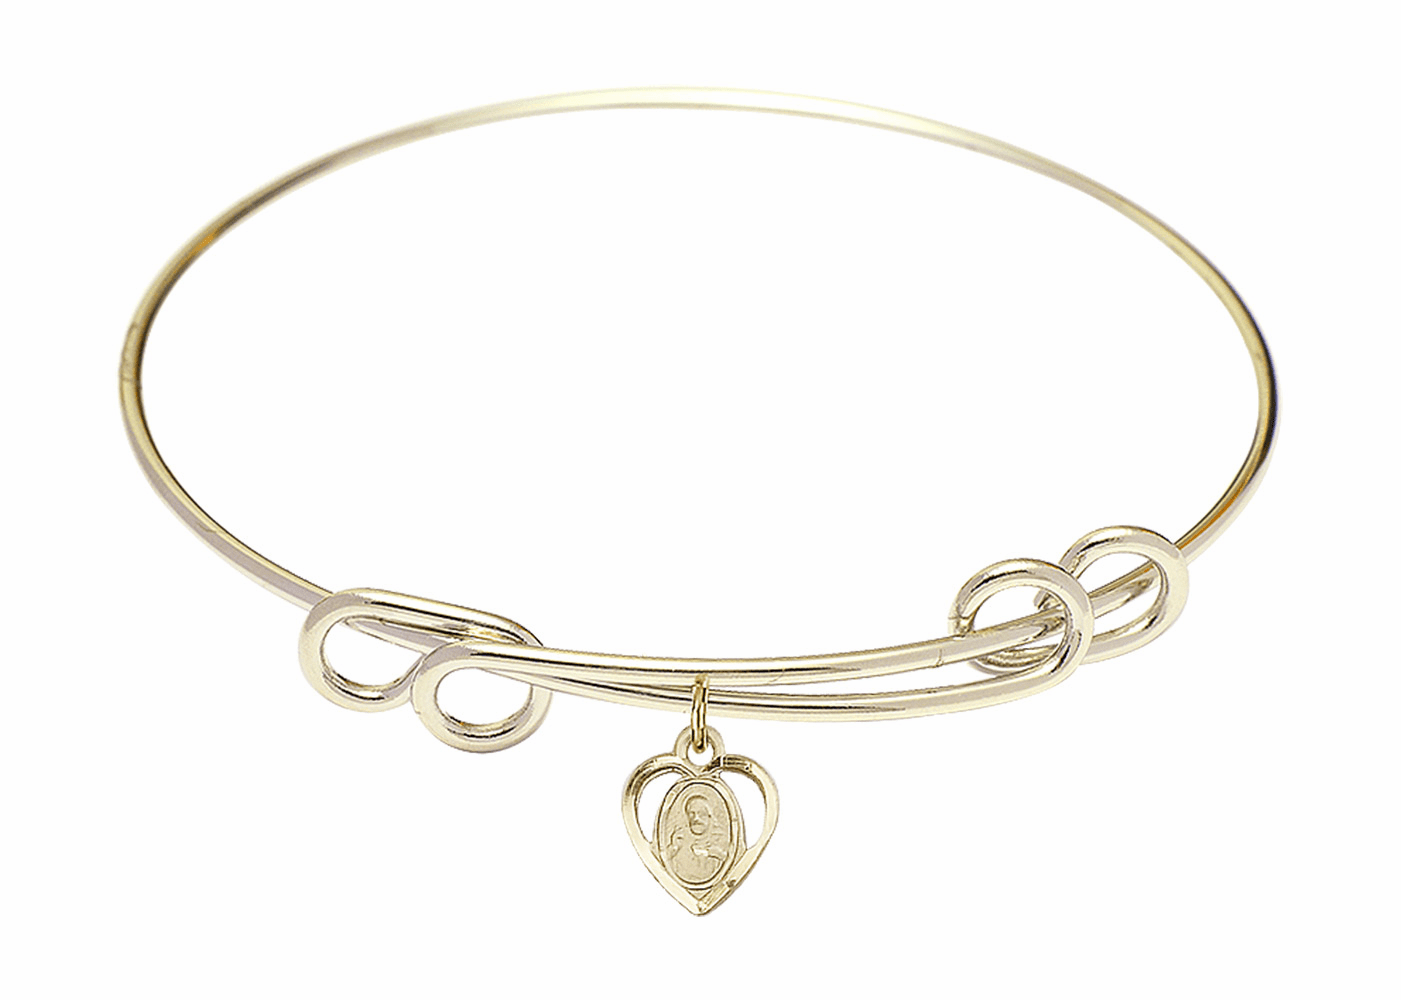 Round Double Loop Bangle Bracelet w/Sacred Heart Charm by Bliss Mfg